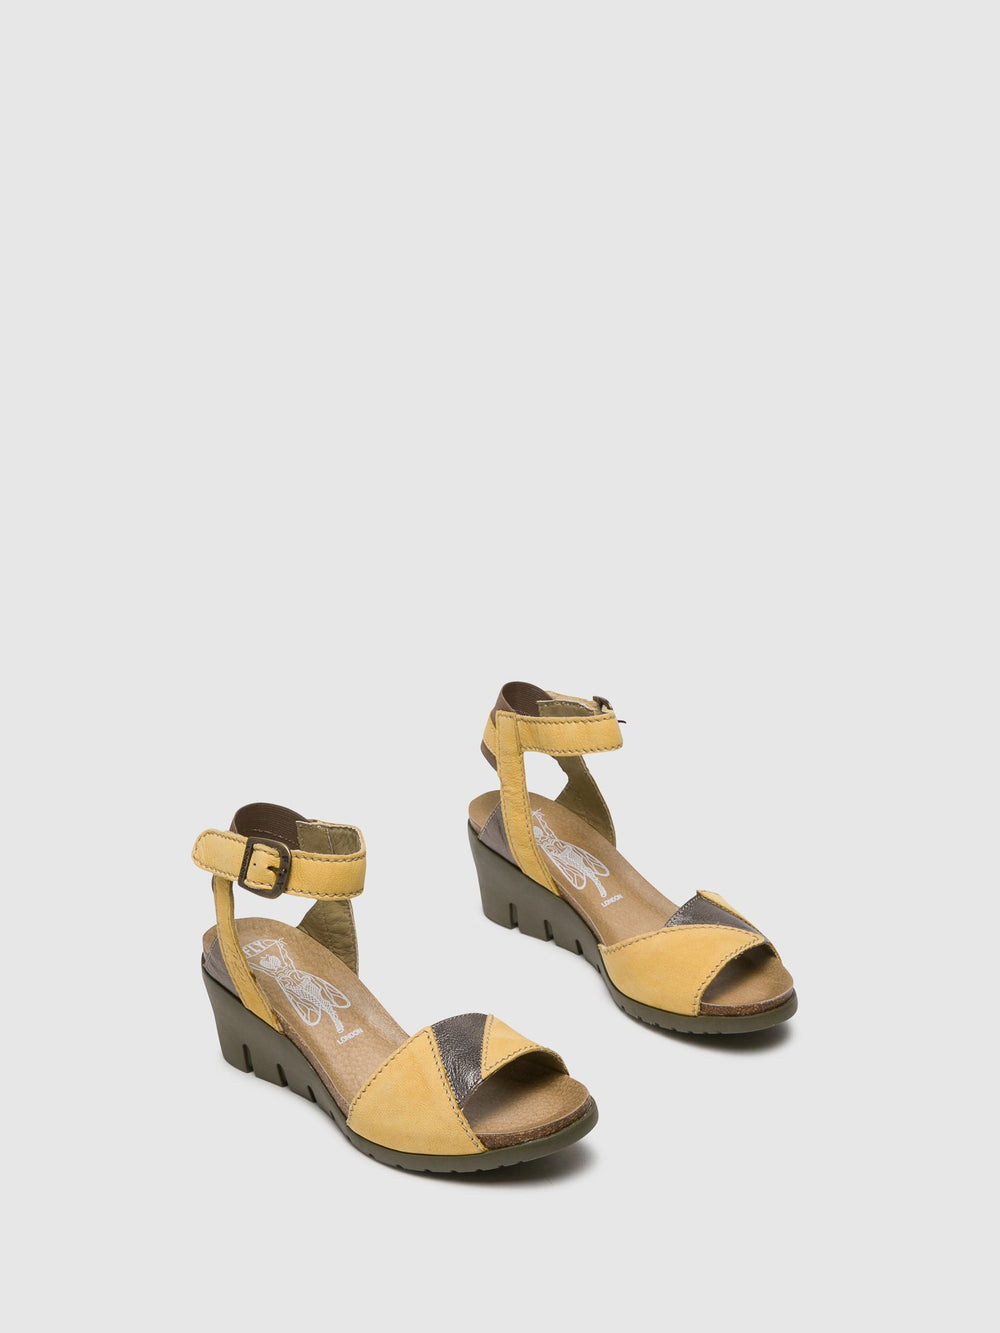 Ankle Strap Sandals IMAT455FLY BUMBLEBEE/BRONZE